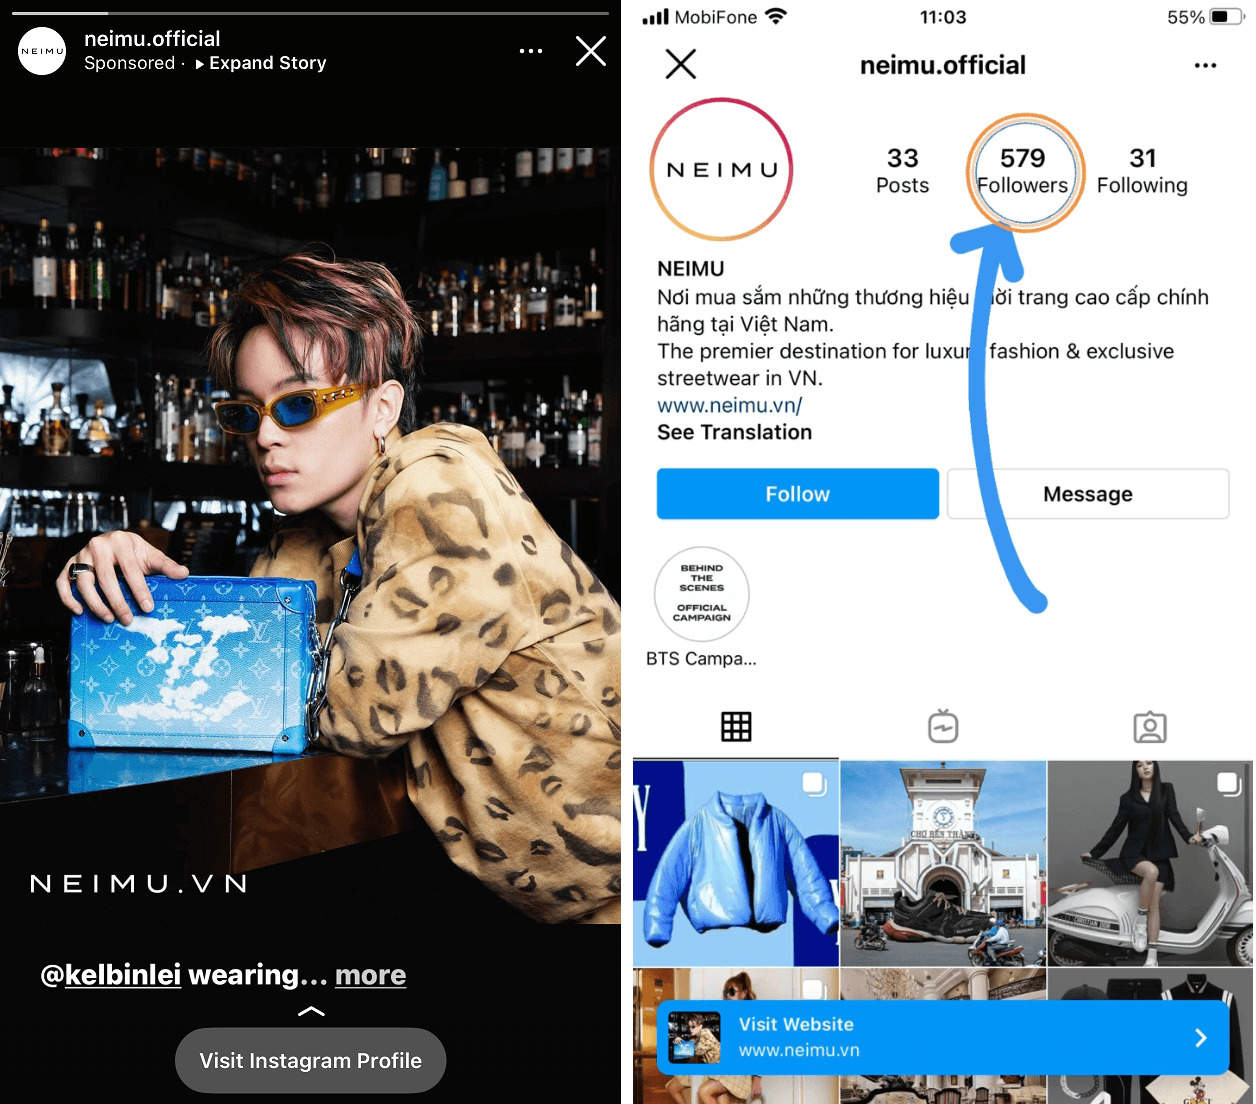 This fashion store only has approximately 600 followers but they can still use the swipe-up feature